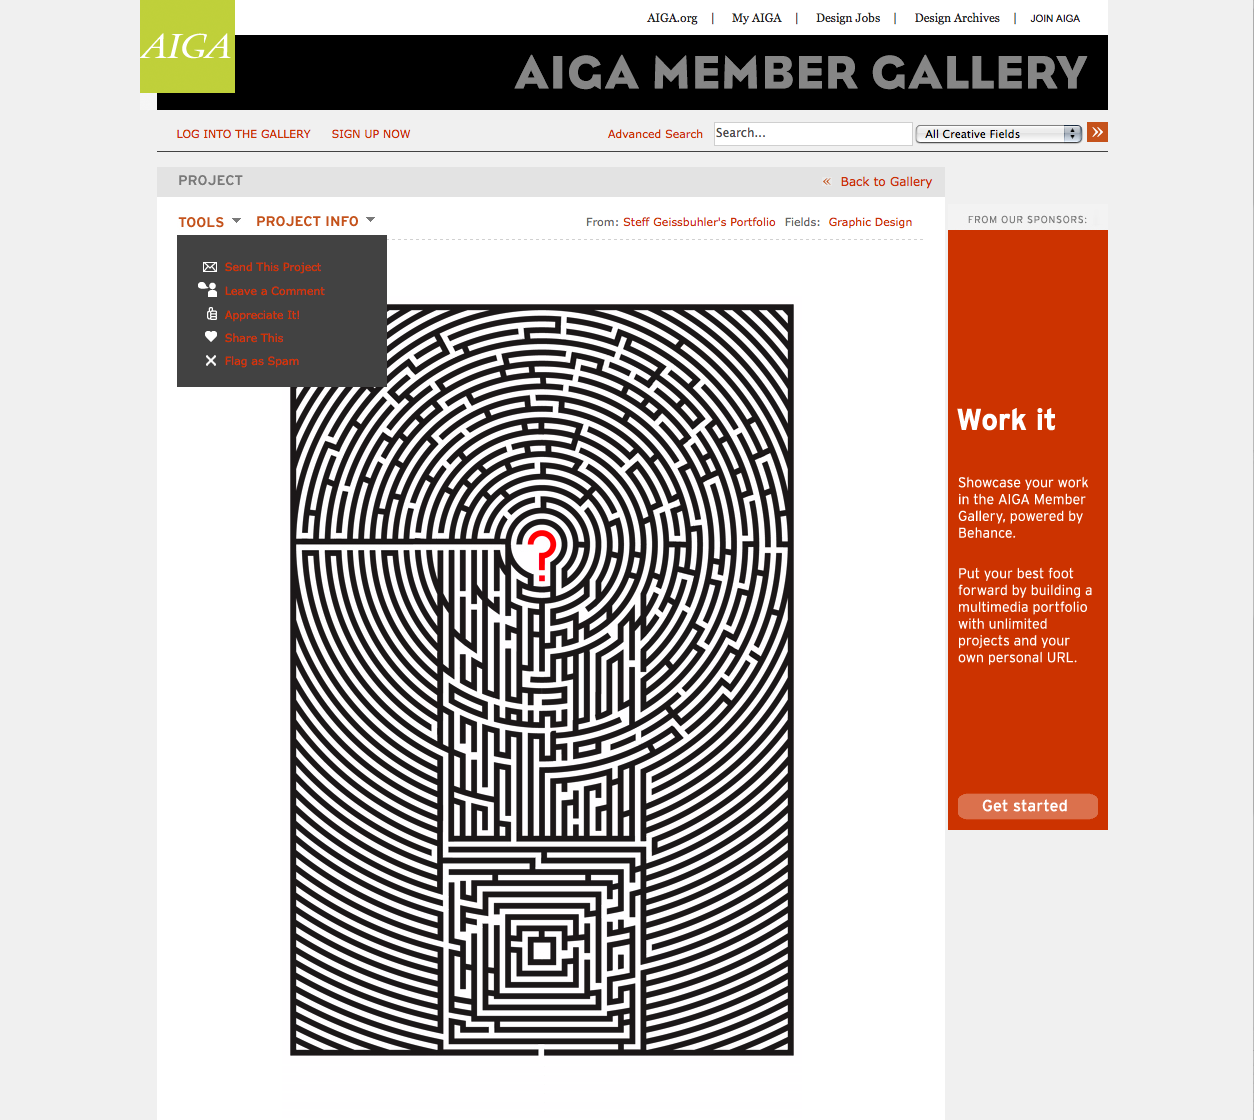 Project image 1 for Interactive Member Gallery, American Institute of Graphic Arts